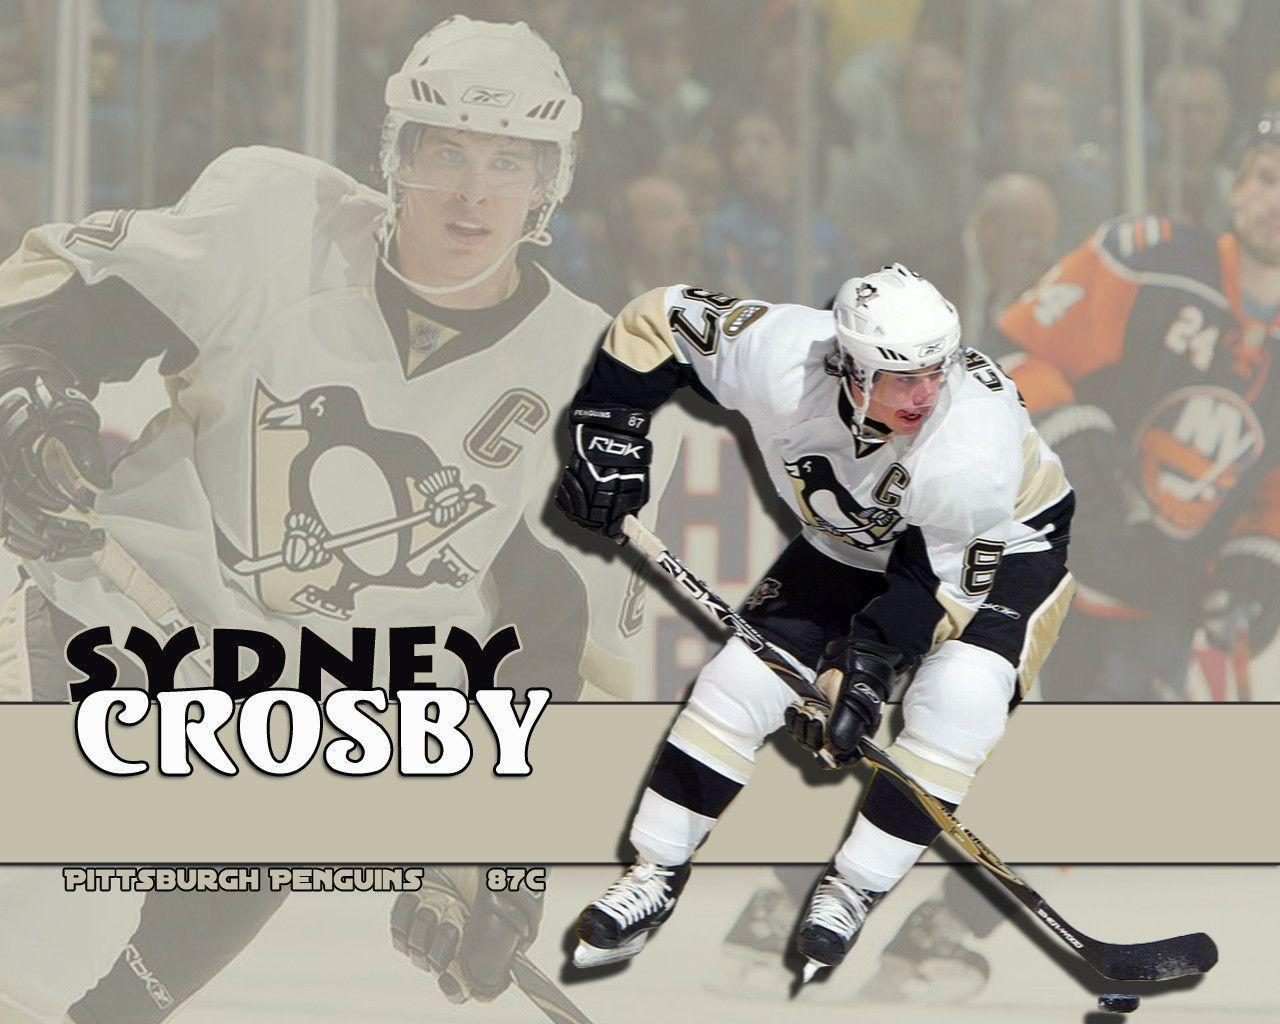 sidney crosby wallpaper nhl - photo #14